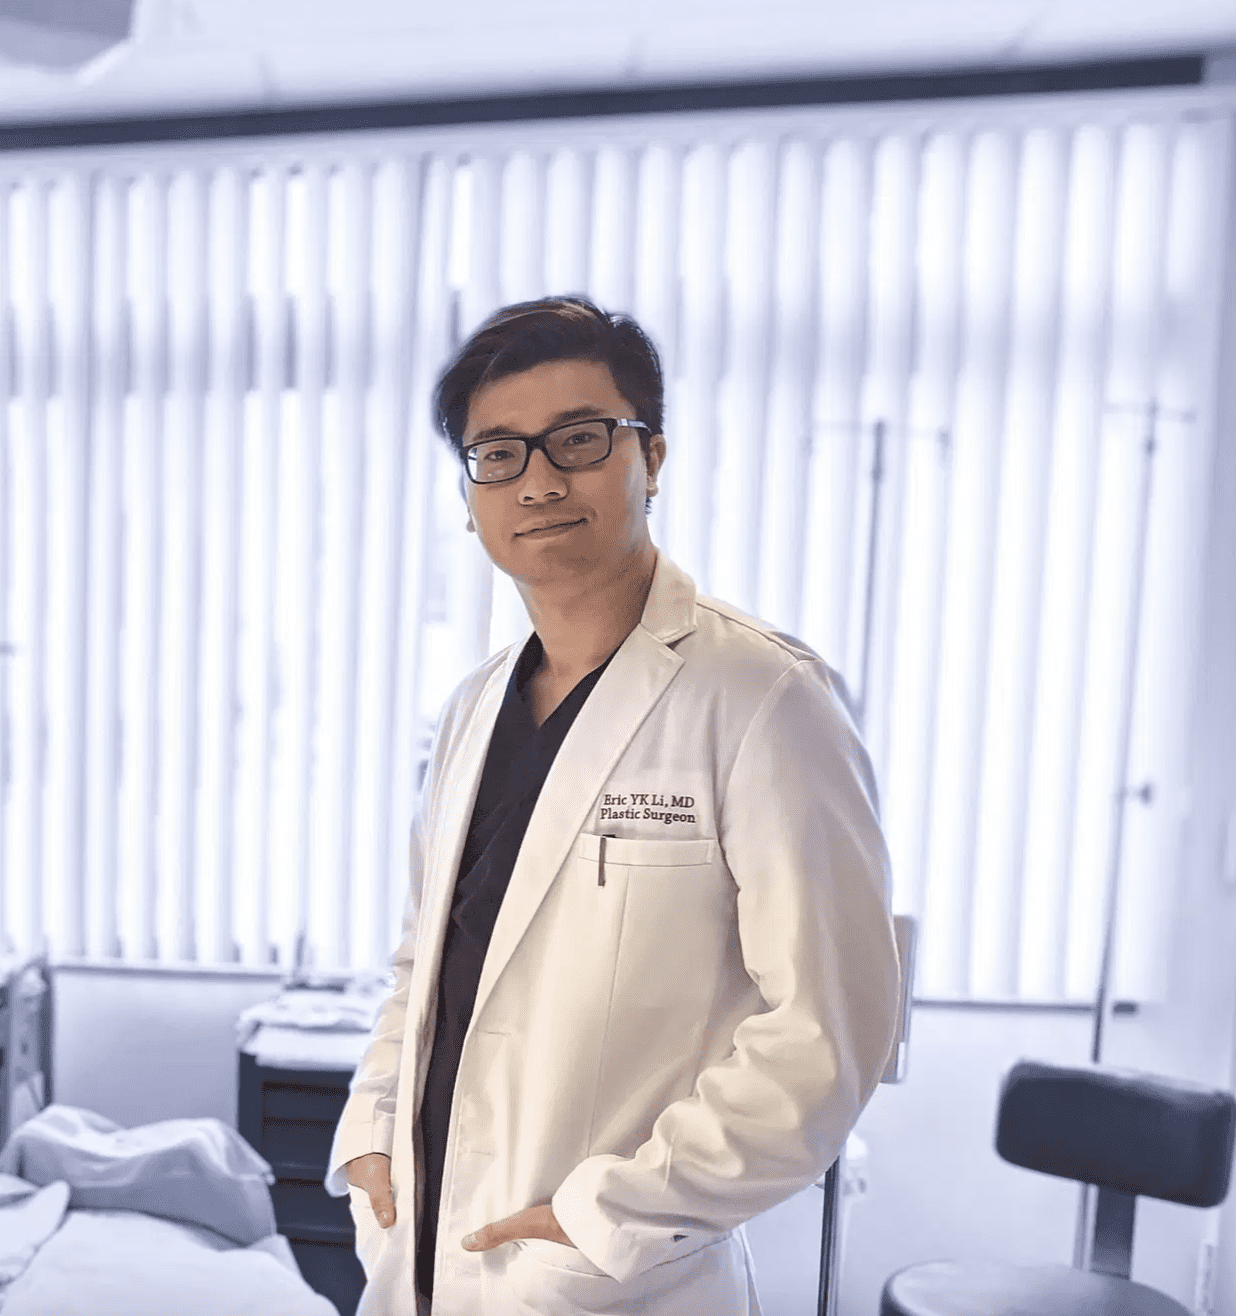 photo of doctor